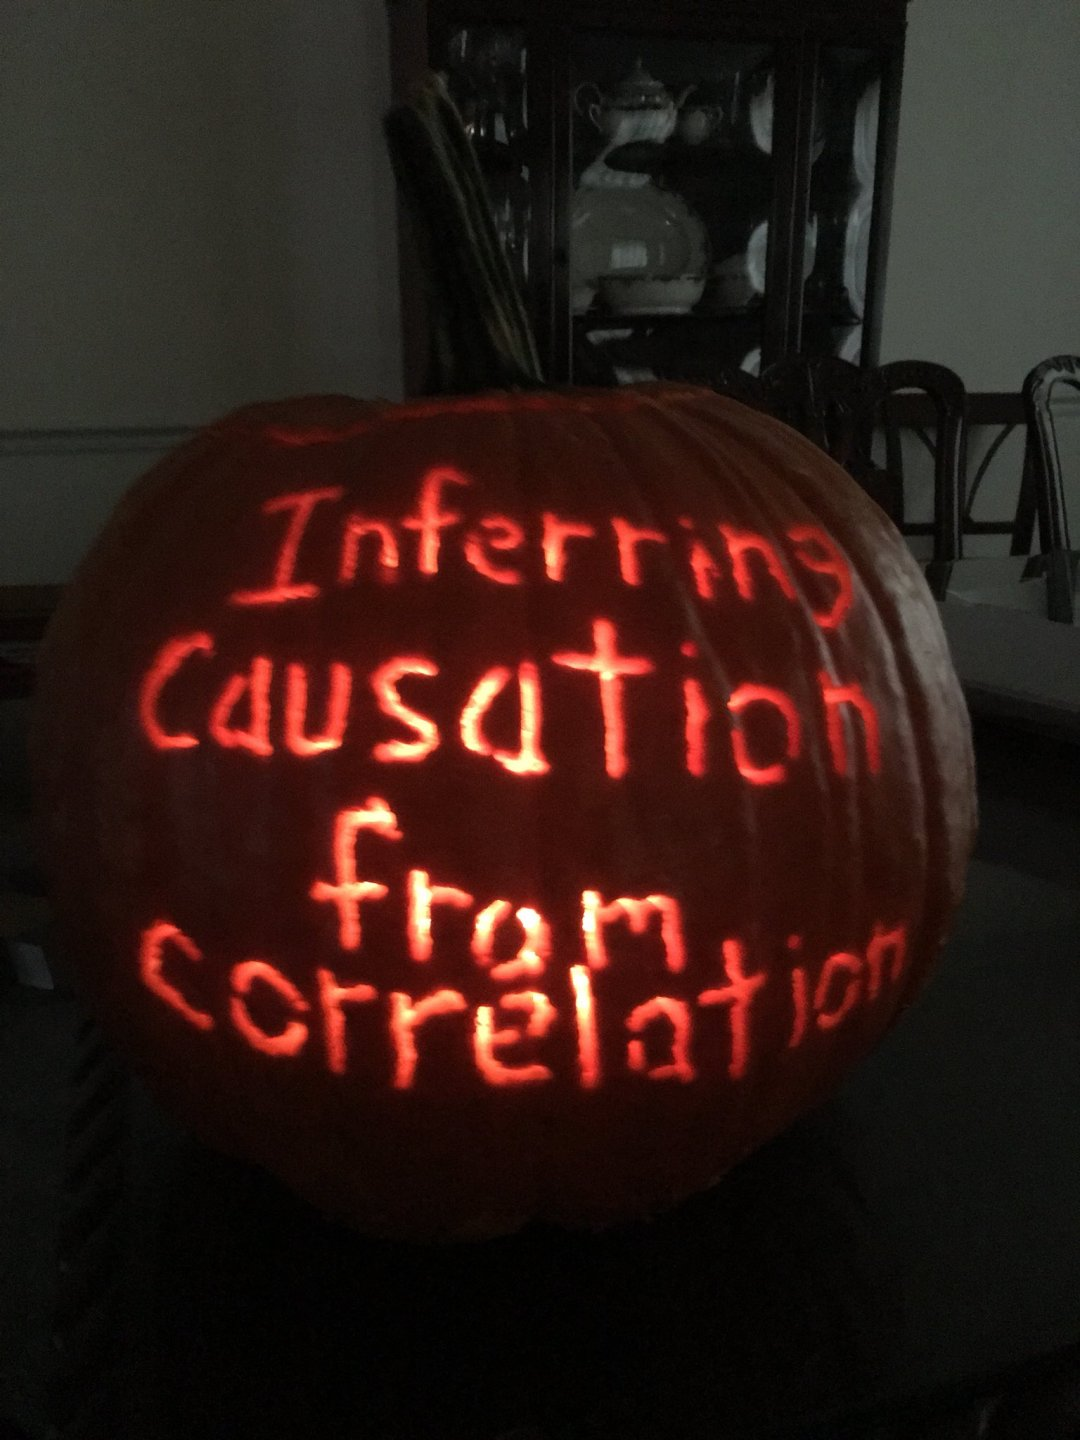 Inferring causation from correlation